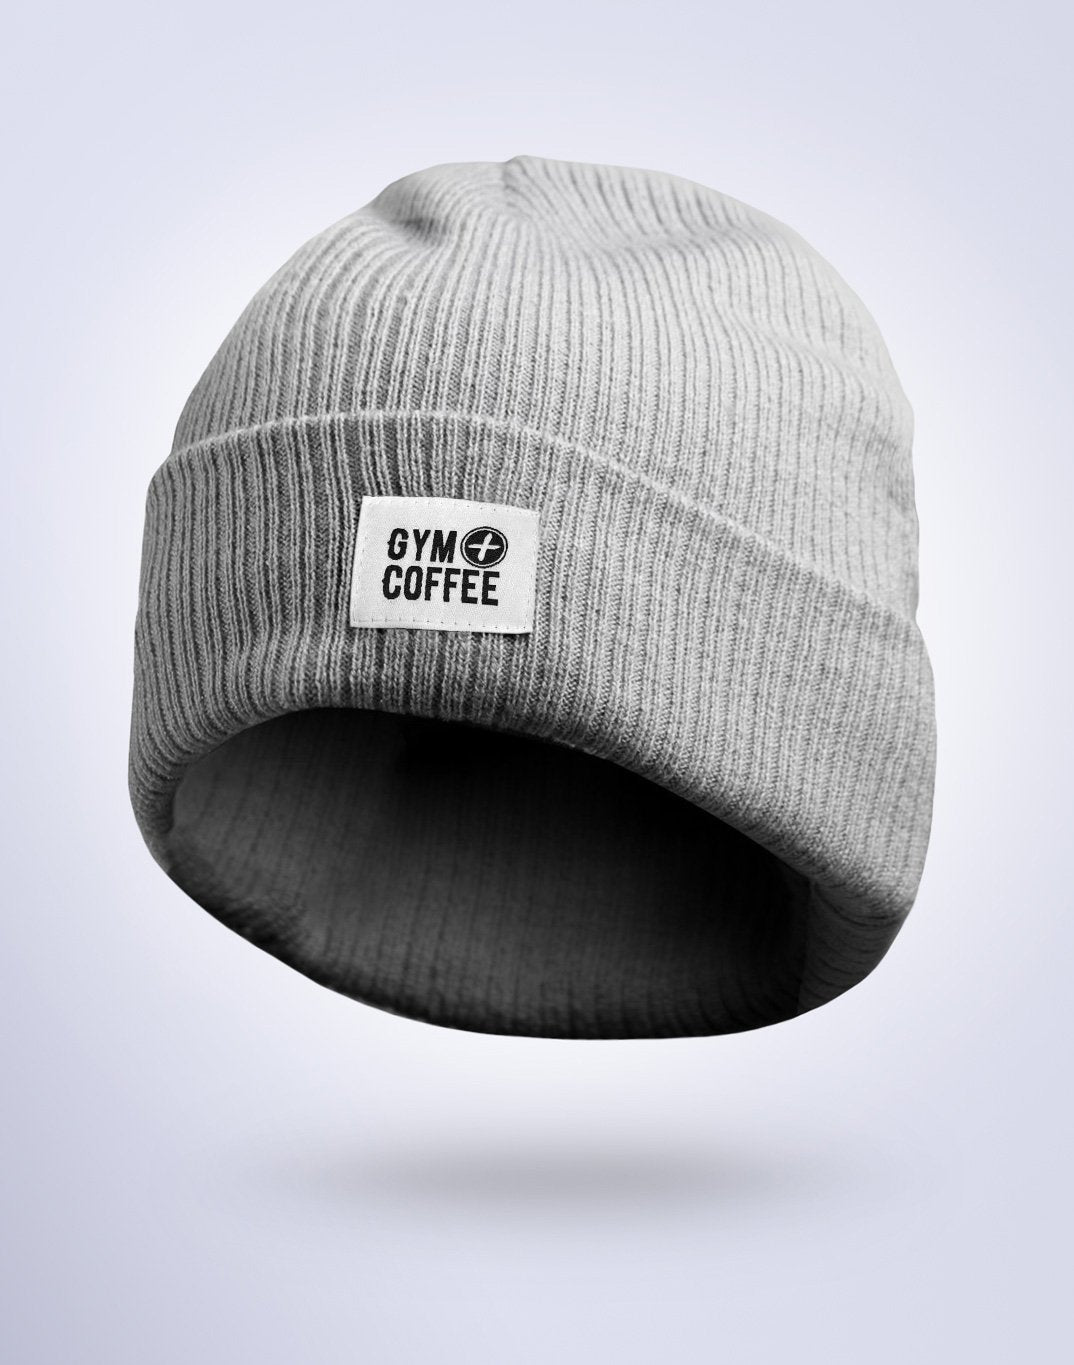 Gym Plus Coffee Beanie Classic Grey Beanie Designed in Ireland